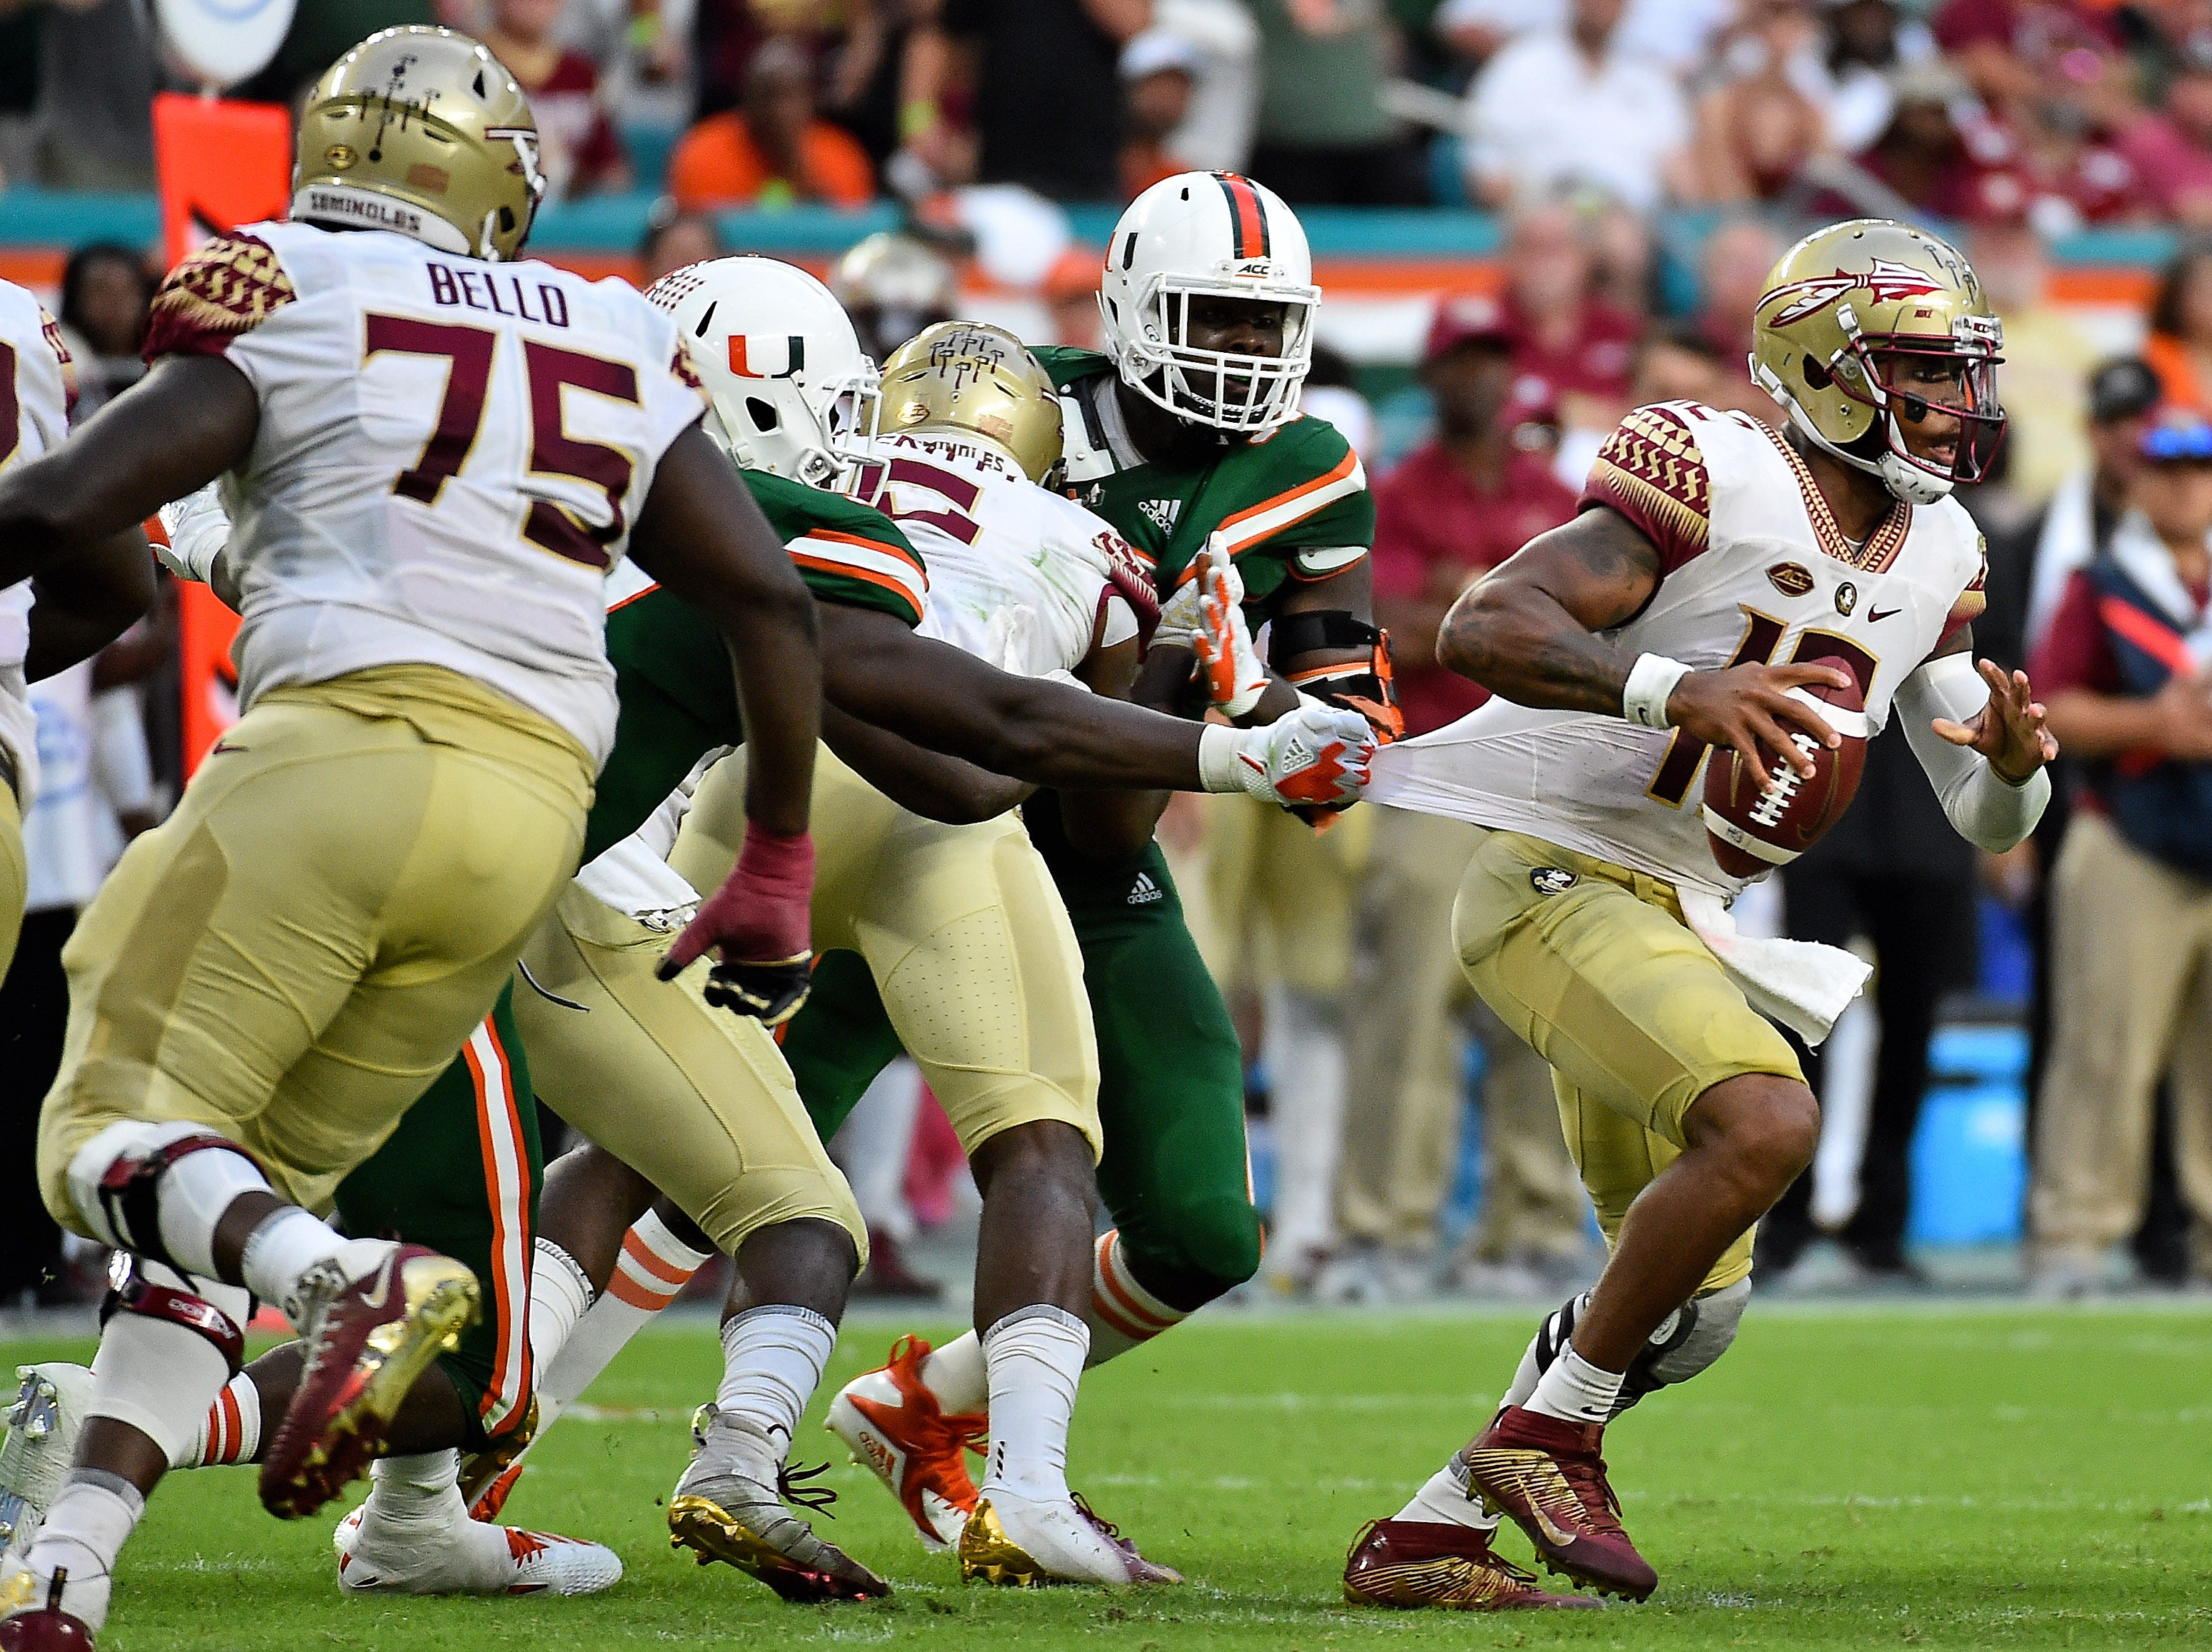 Oct 6, 2018; Miami Gardens, FL, USA; Florida State Seminoles quarterback Deondre Francois (12) runs the ball under pressure during the second half against the Miami Hurricanes at Hard Rock Stadium. Mandatory Credit: Jasen Vinlove-USA TODAY Sports